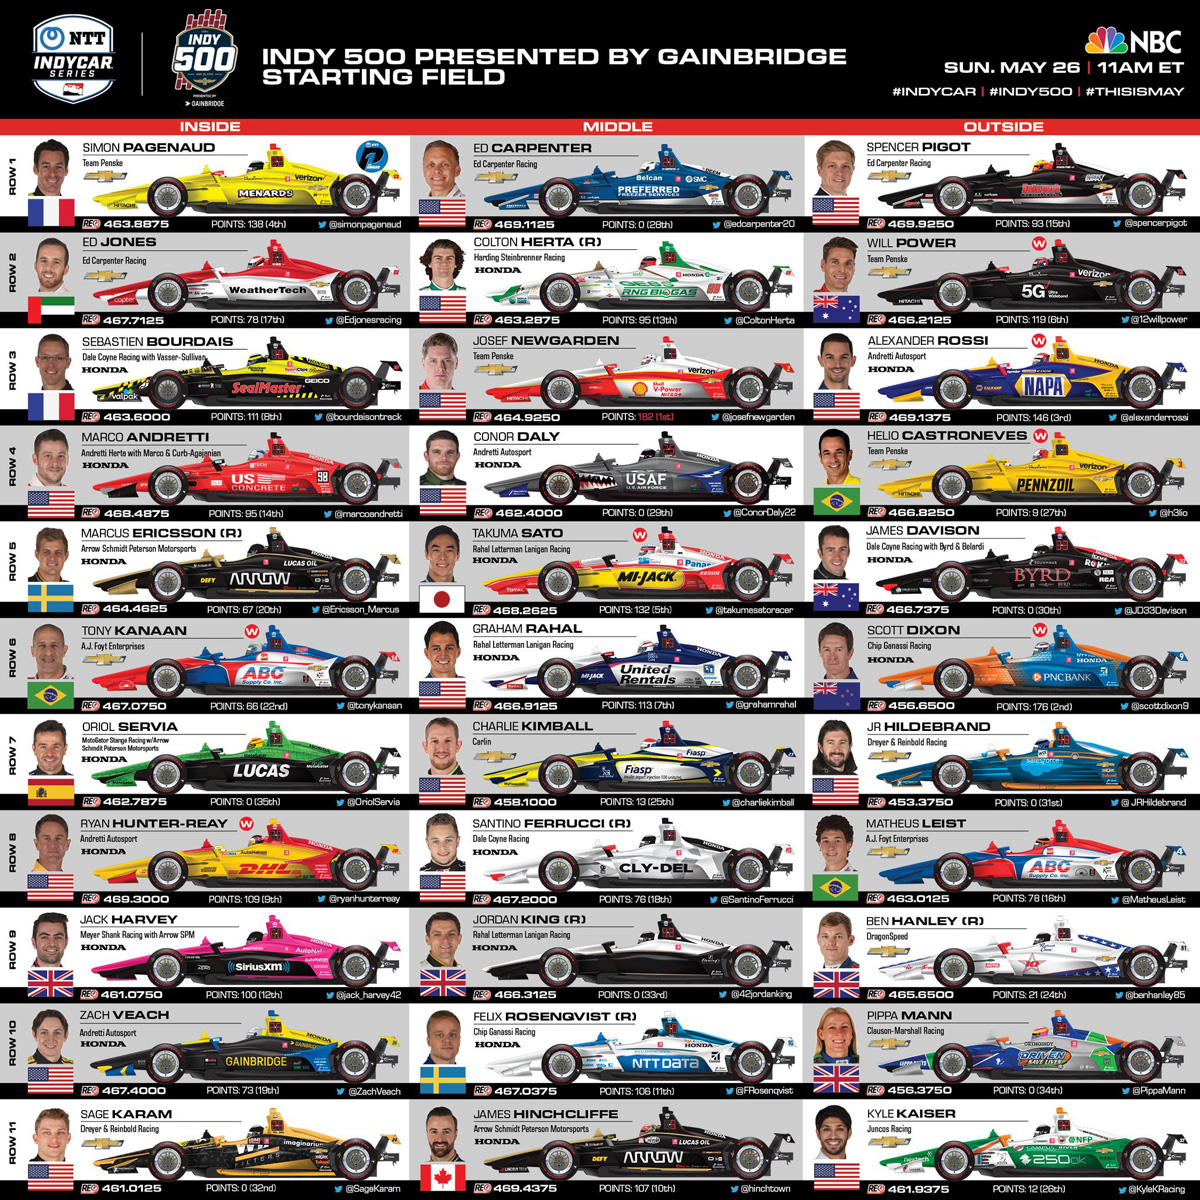 Indy 500 field